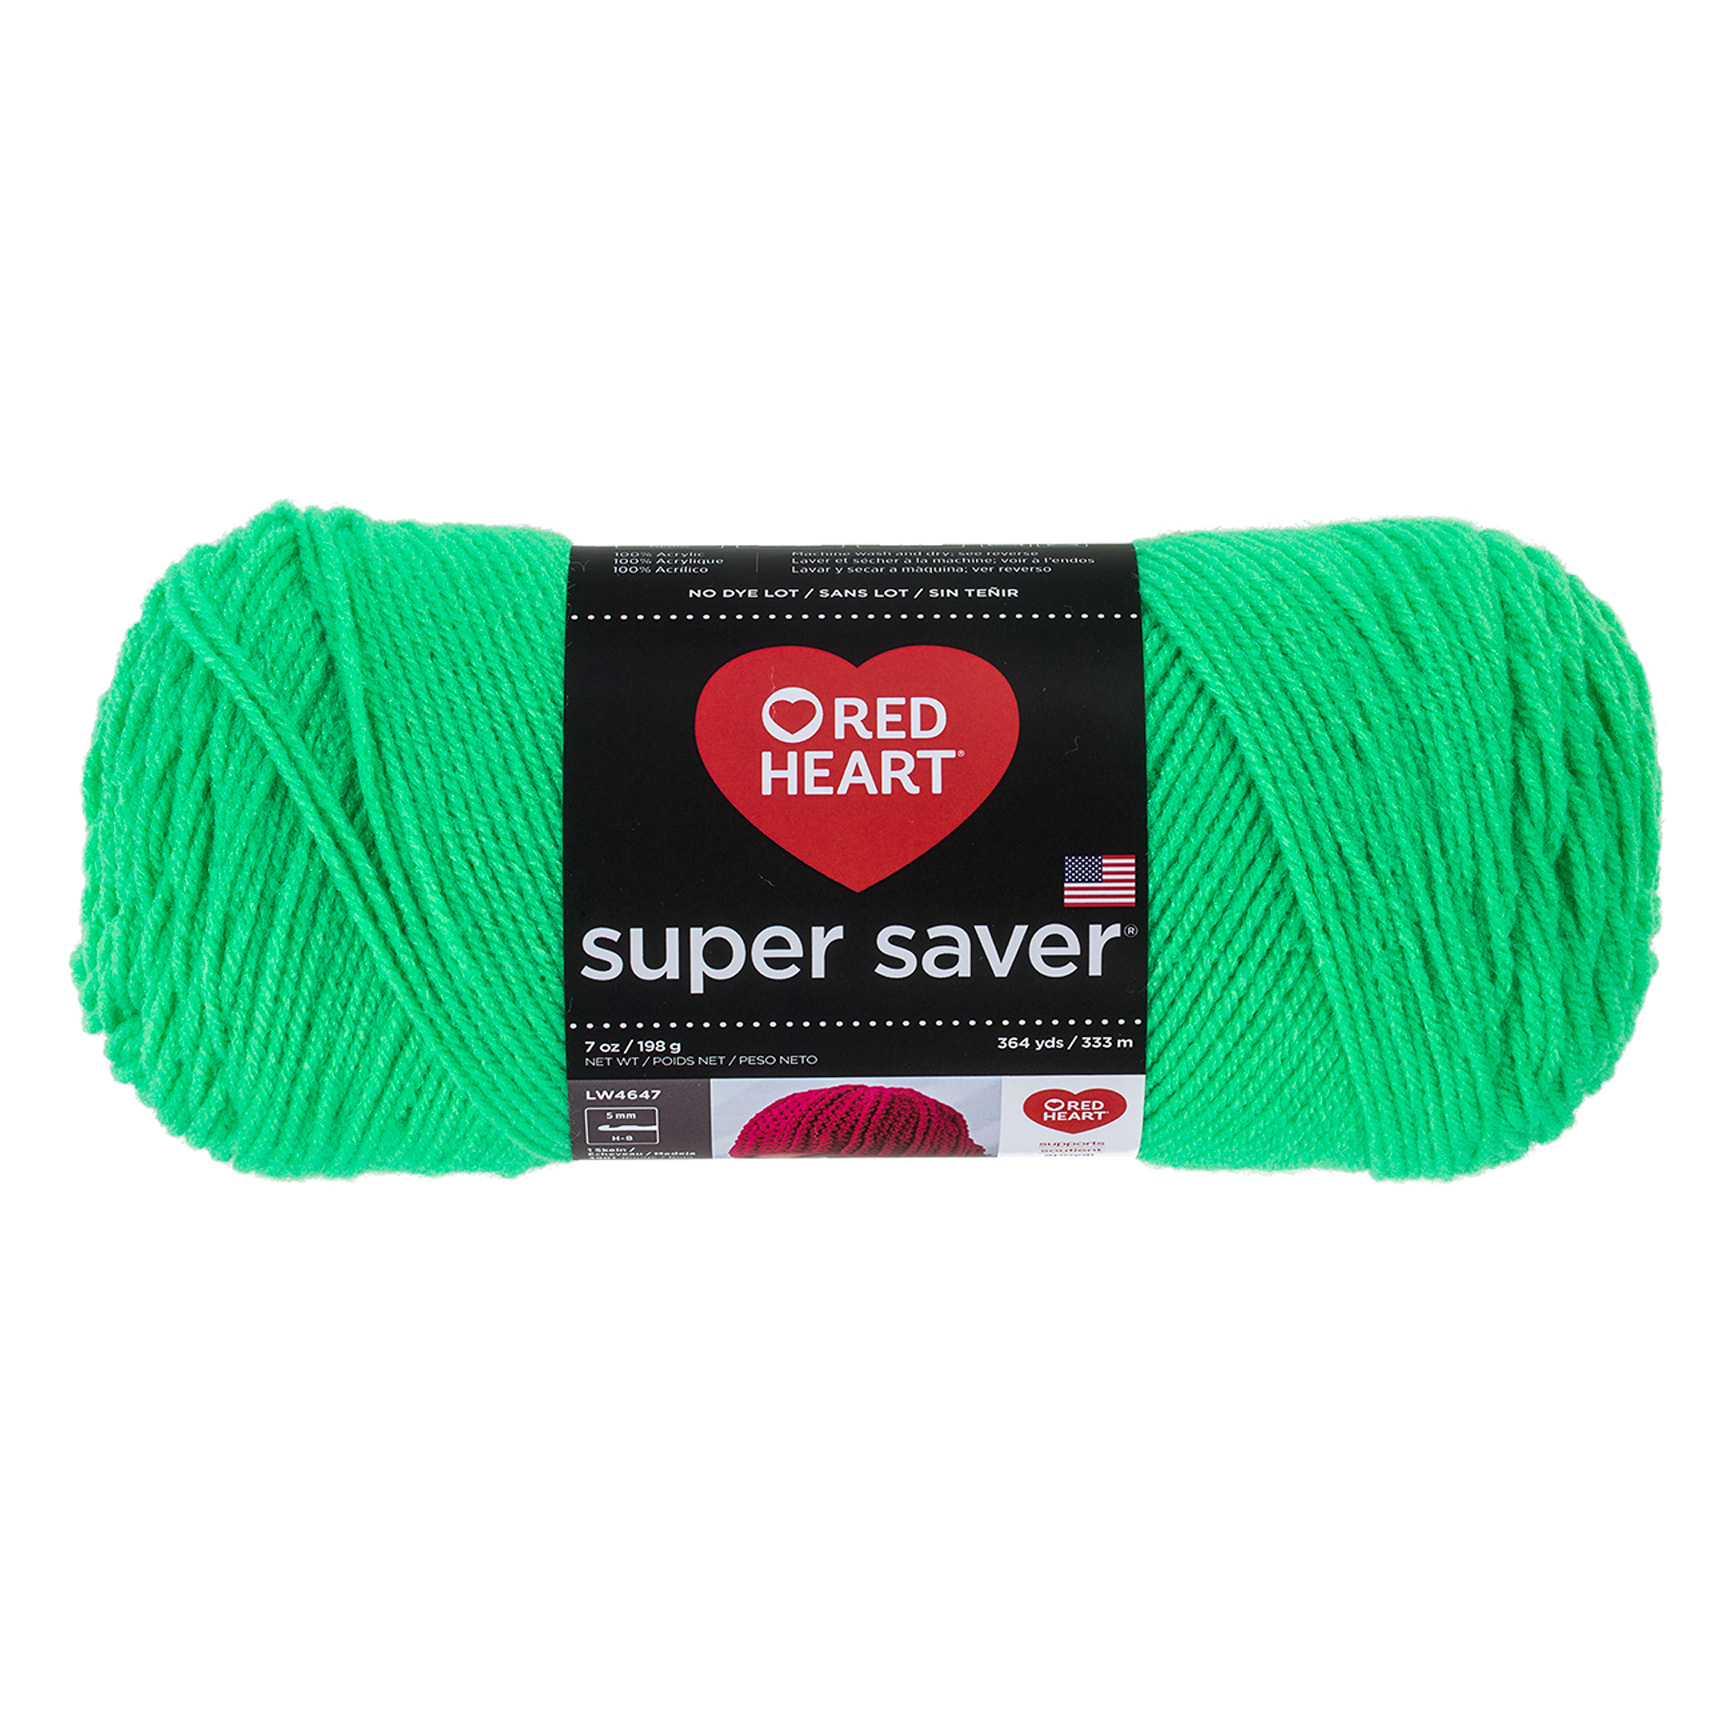 Red Heart Super Saver Glowworm Yarn